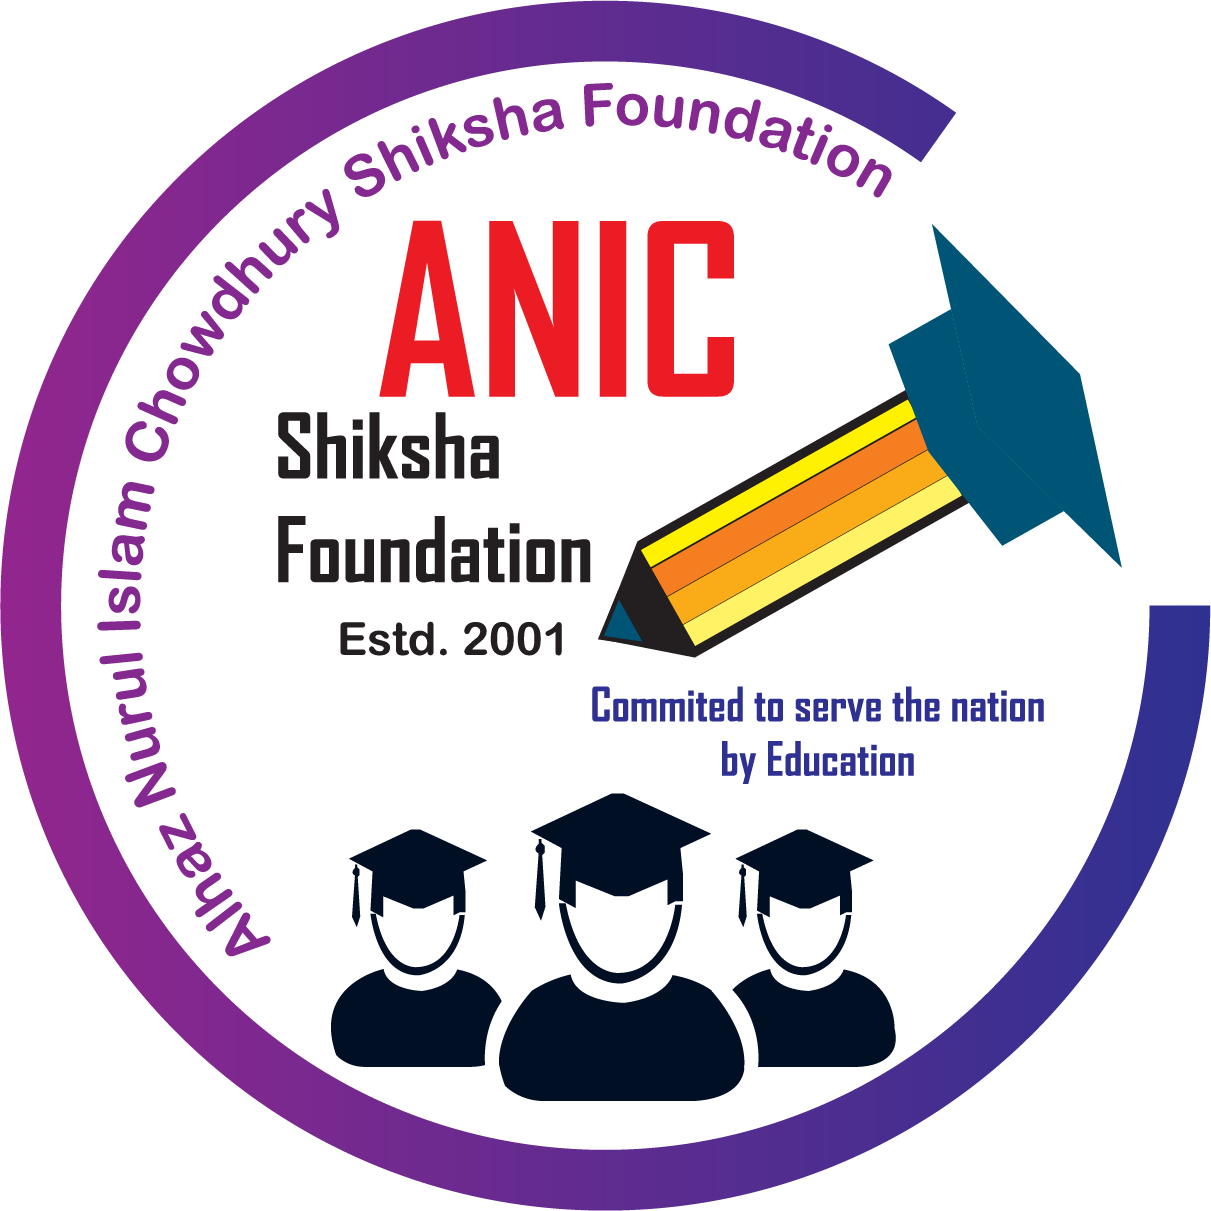 ANIC Foundation